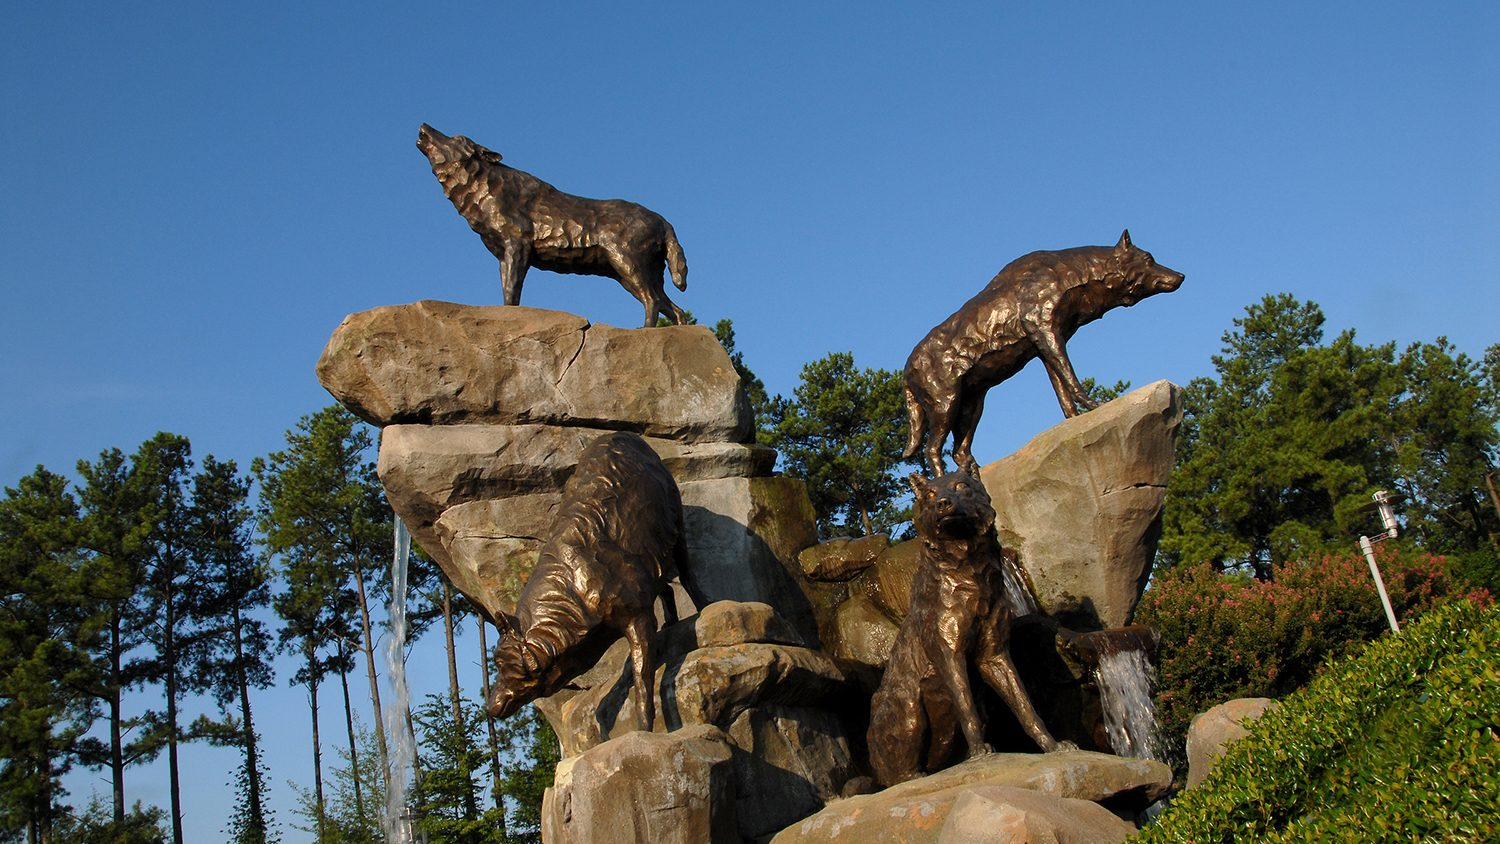 Statues of wolves and rocks.